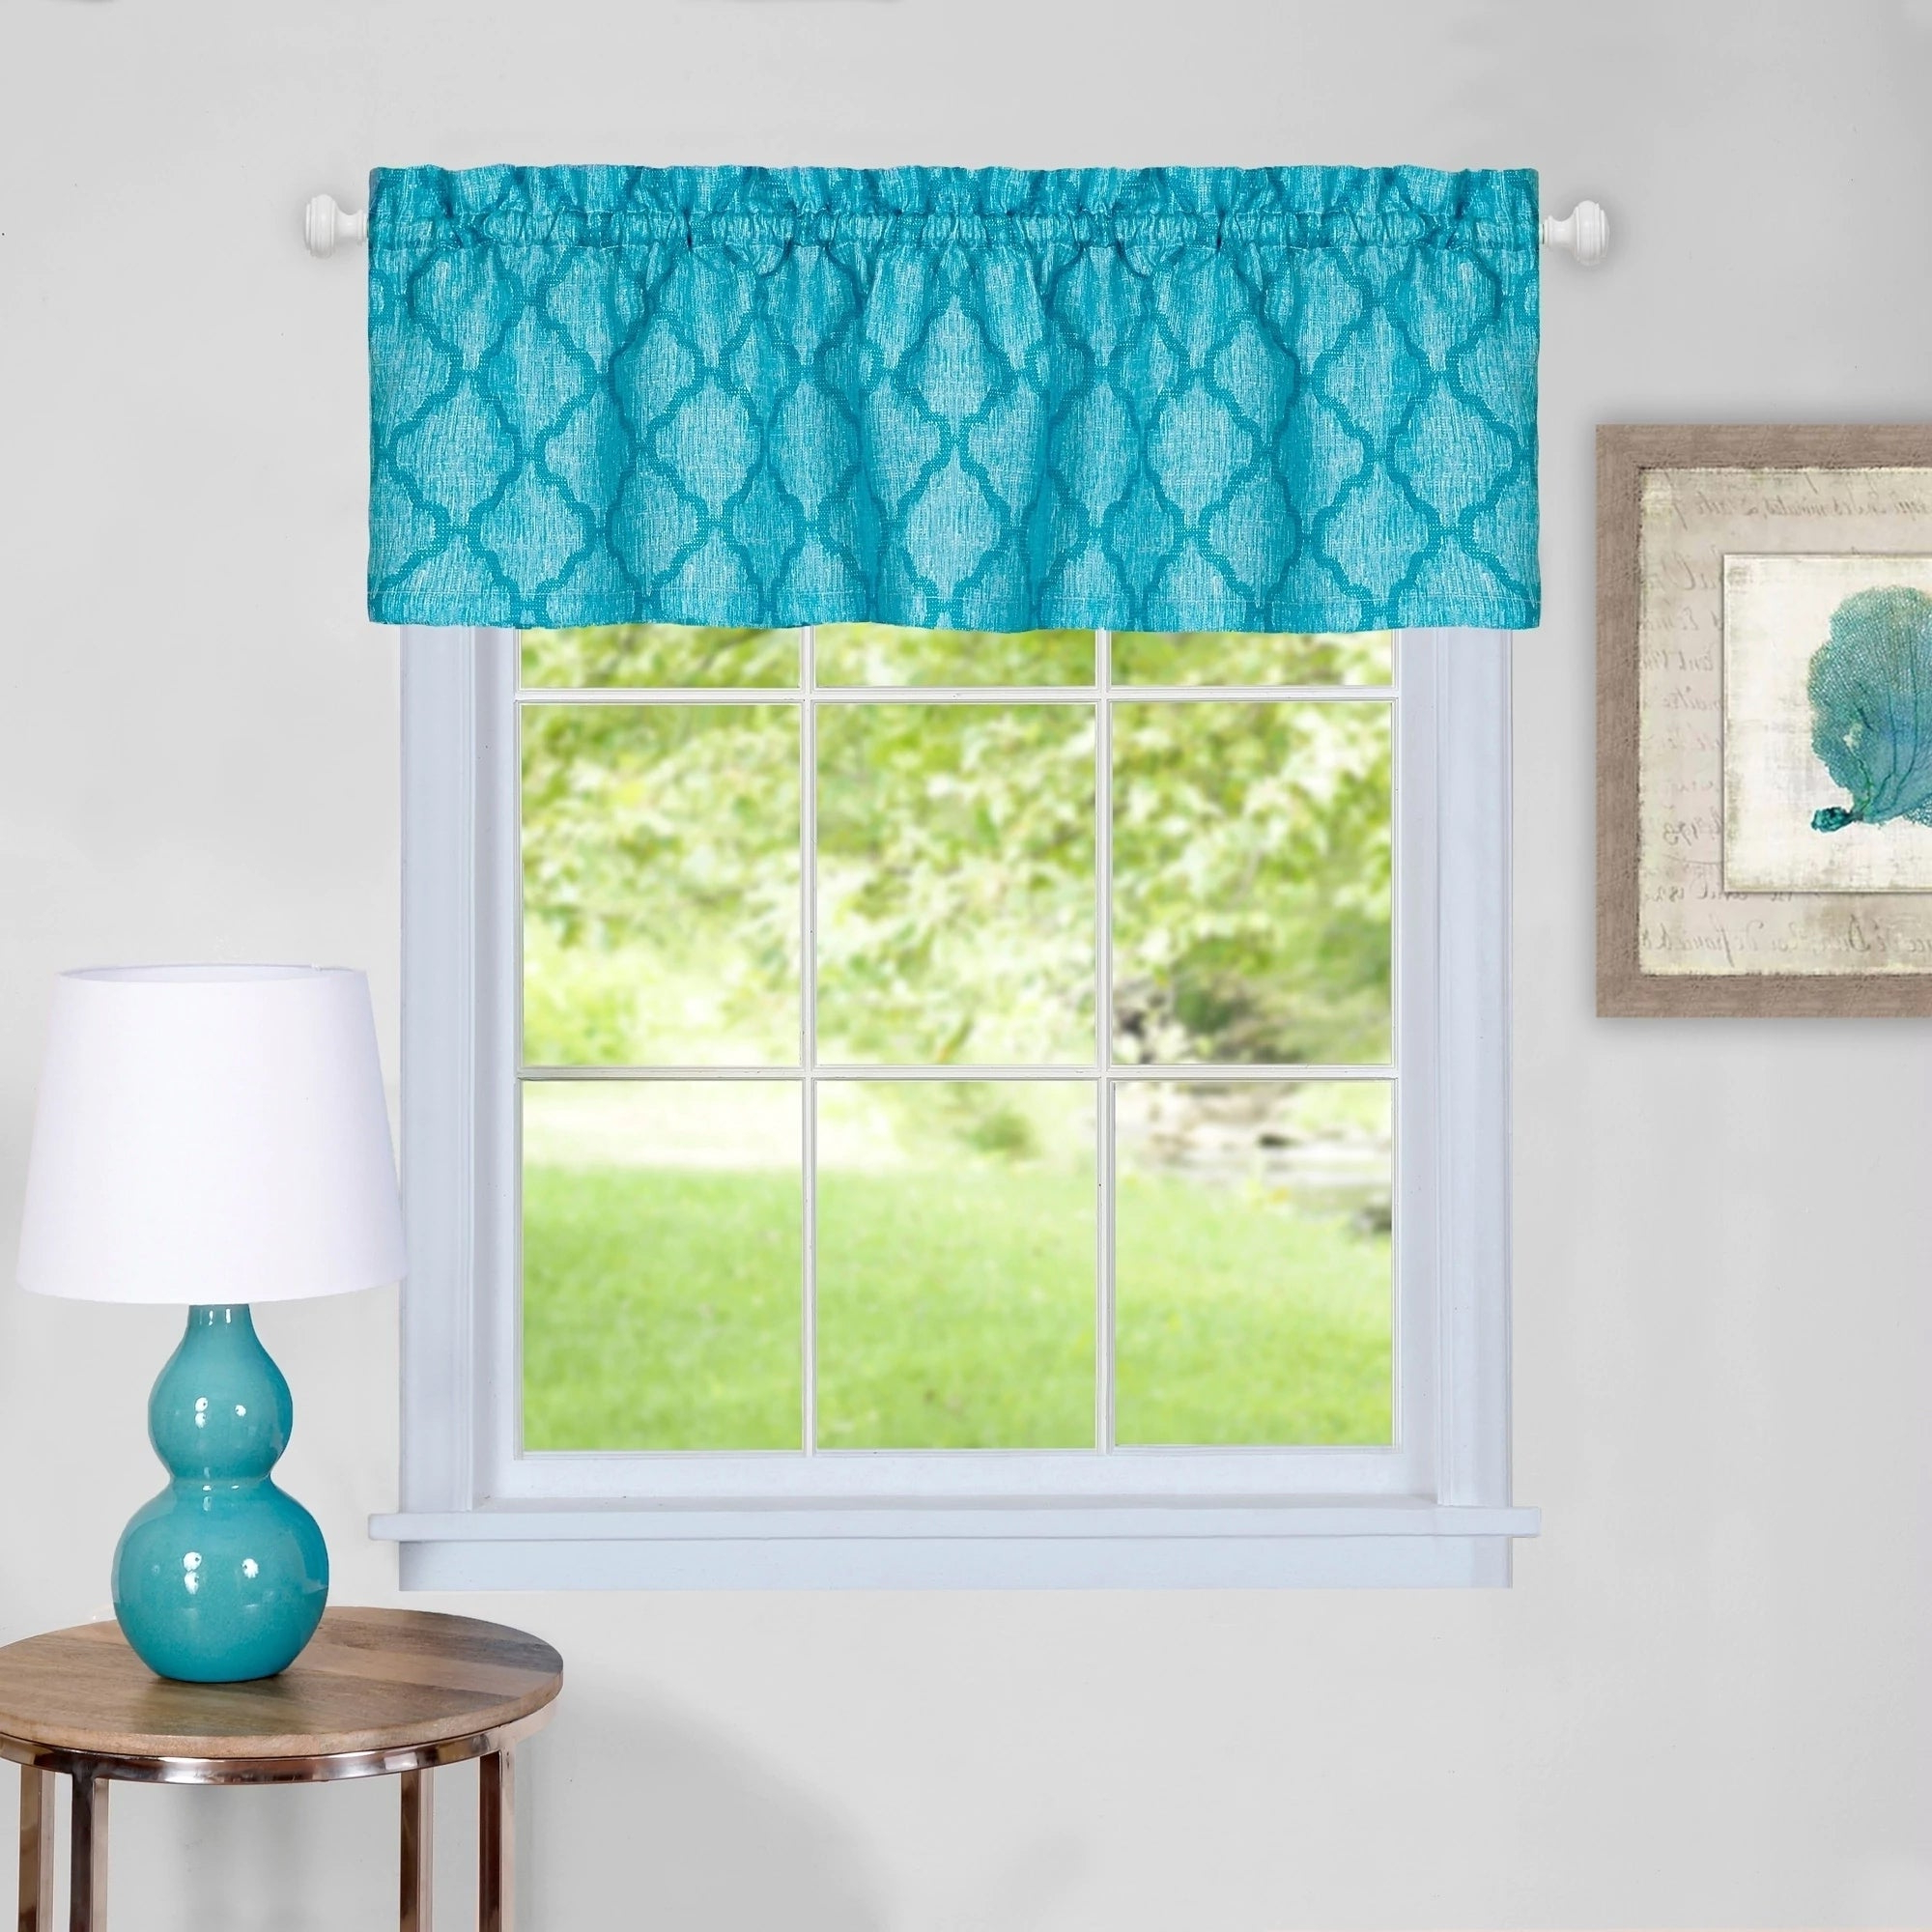 Trellis Pattern Window Valances Throughout Well Known Trellis Pattern Window Valance (turquoise) (View 8 of 20)